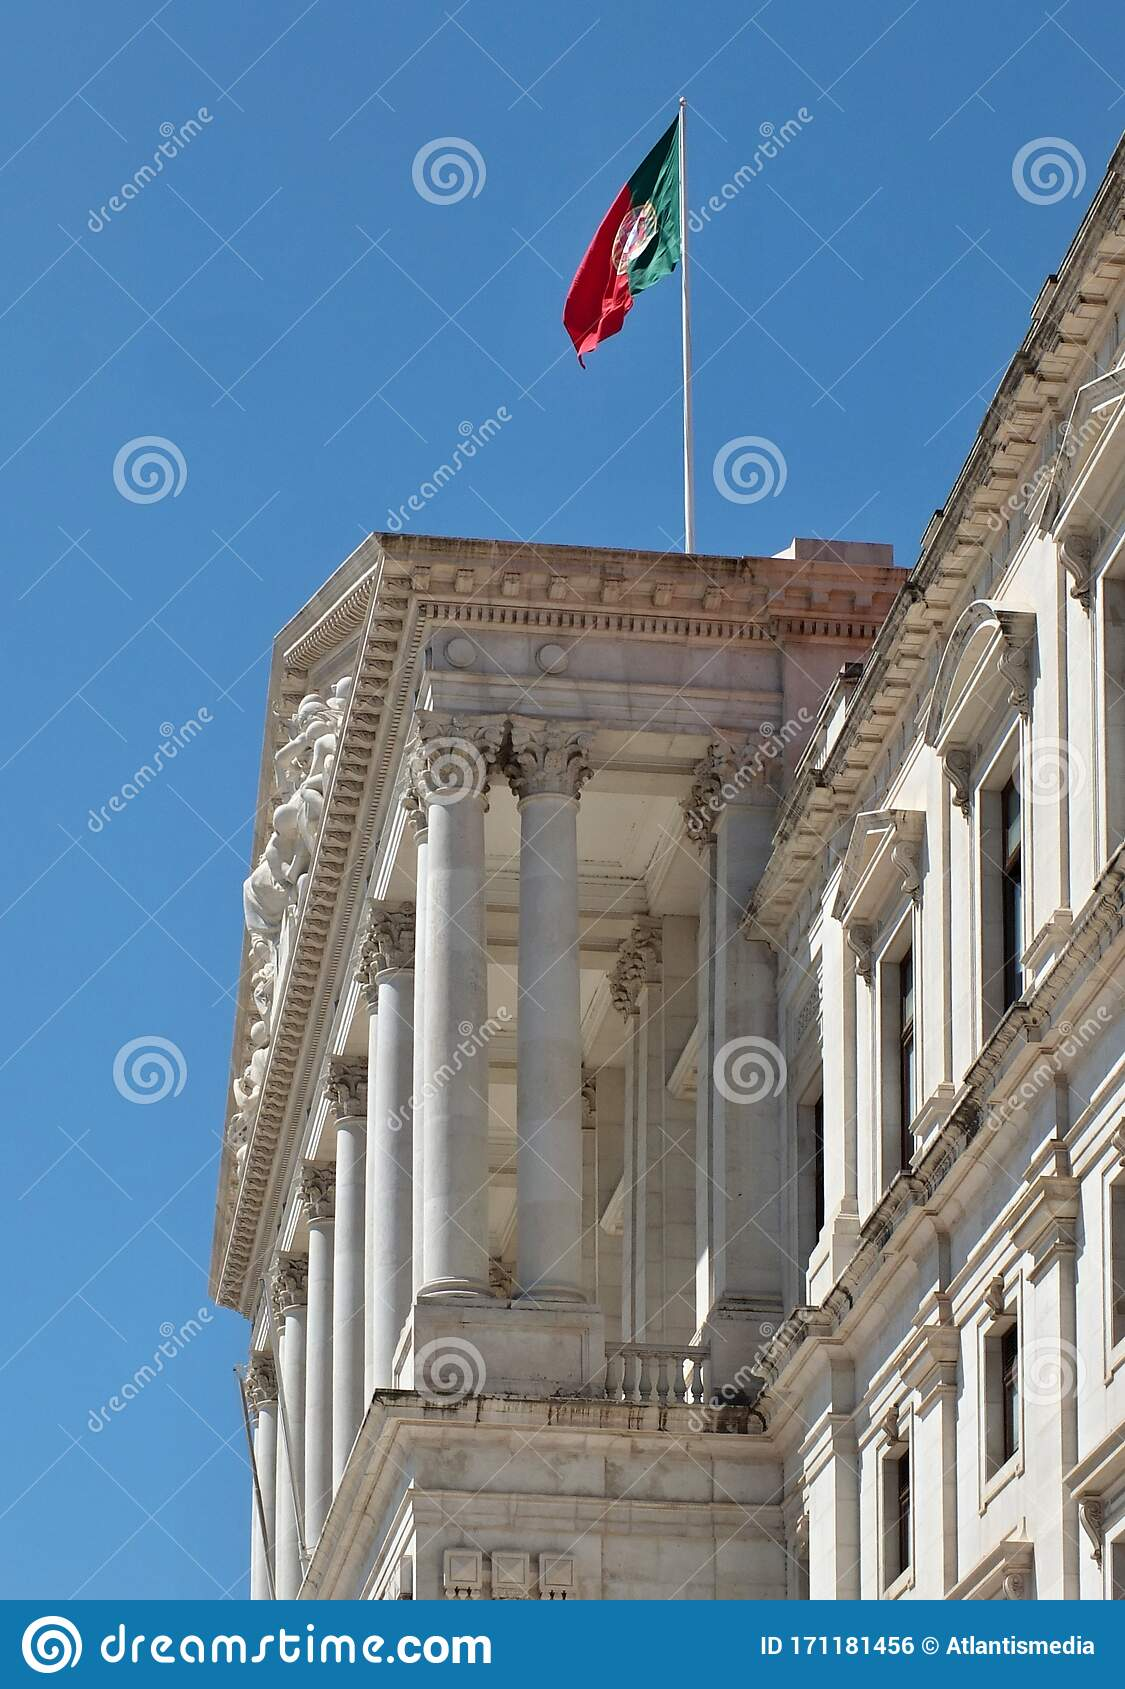 Historic Government Building In Lisbon Portugal Stock Photo Image Of Flag Banner 171181456